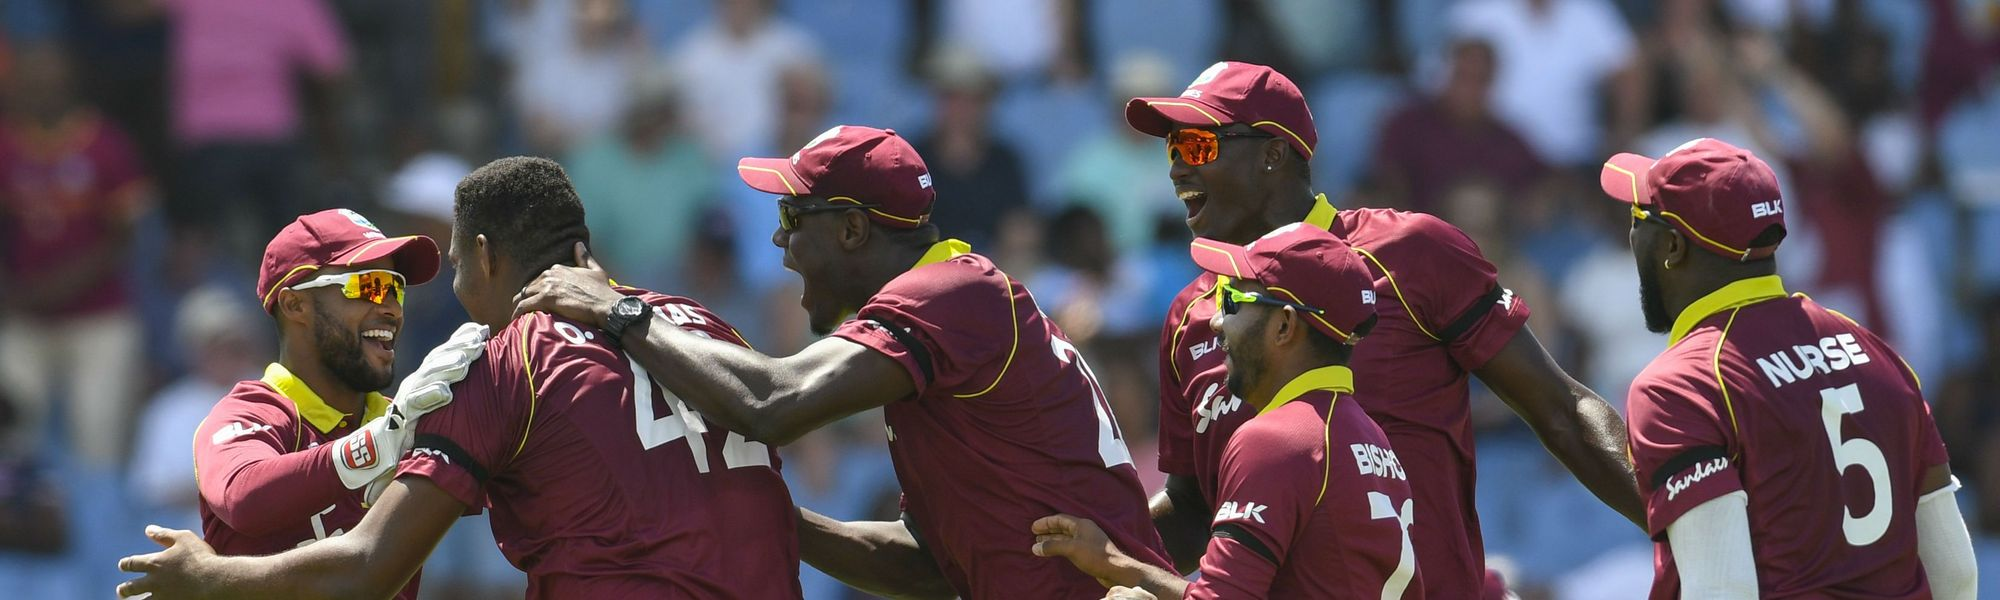 West Indies drew with No.1 ranked ODI side England in the series earlier this year